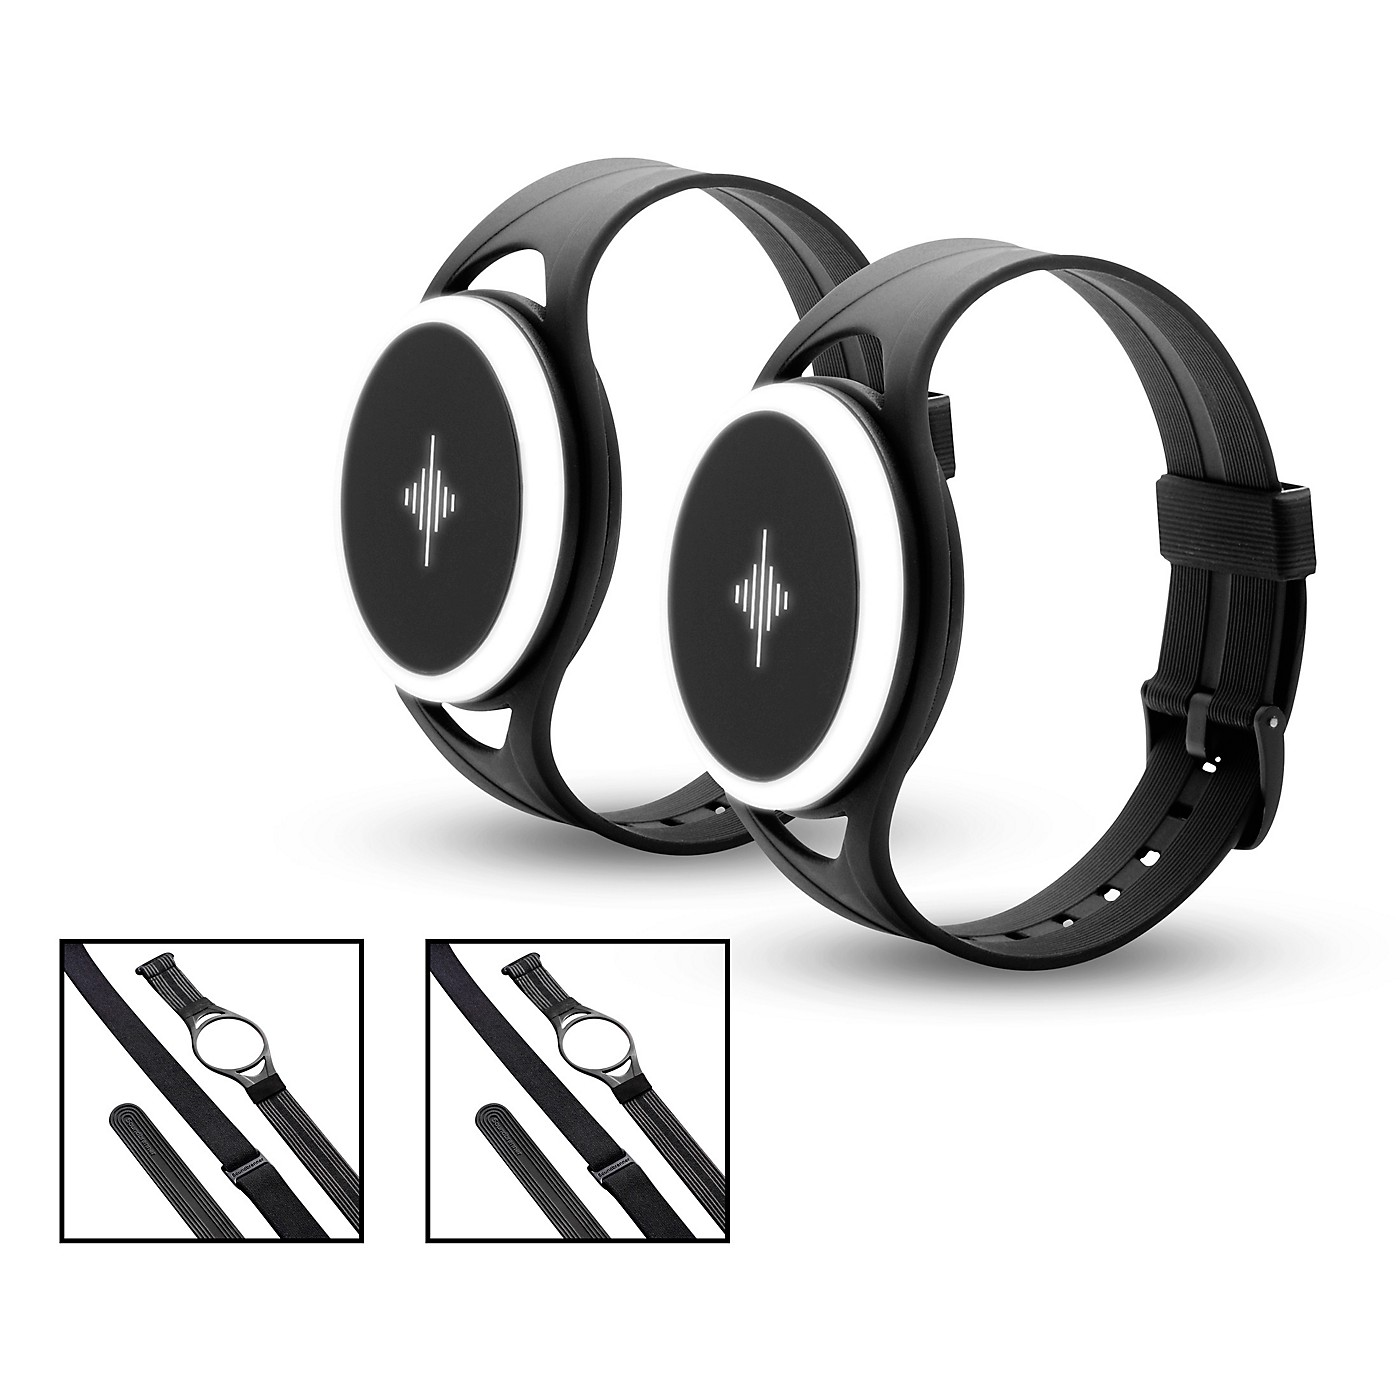 Soundbrenner 2x2 Body Strap and Pulse Pack thumbnail